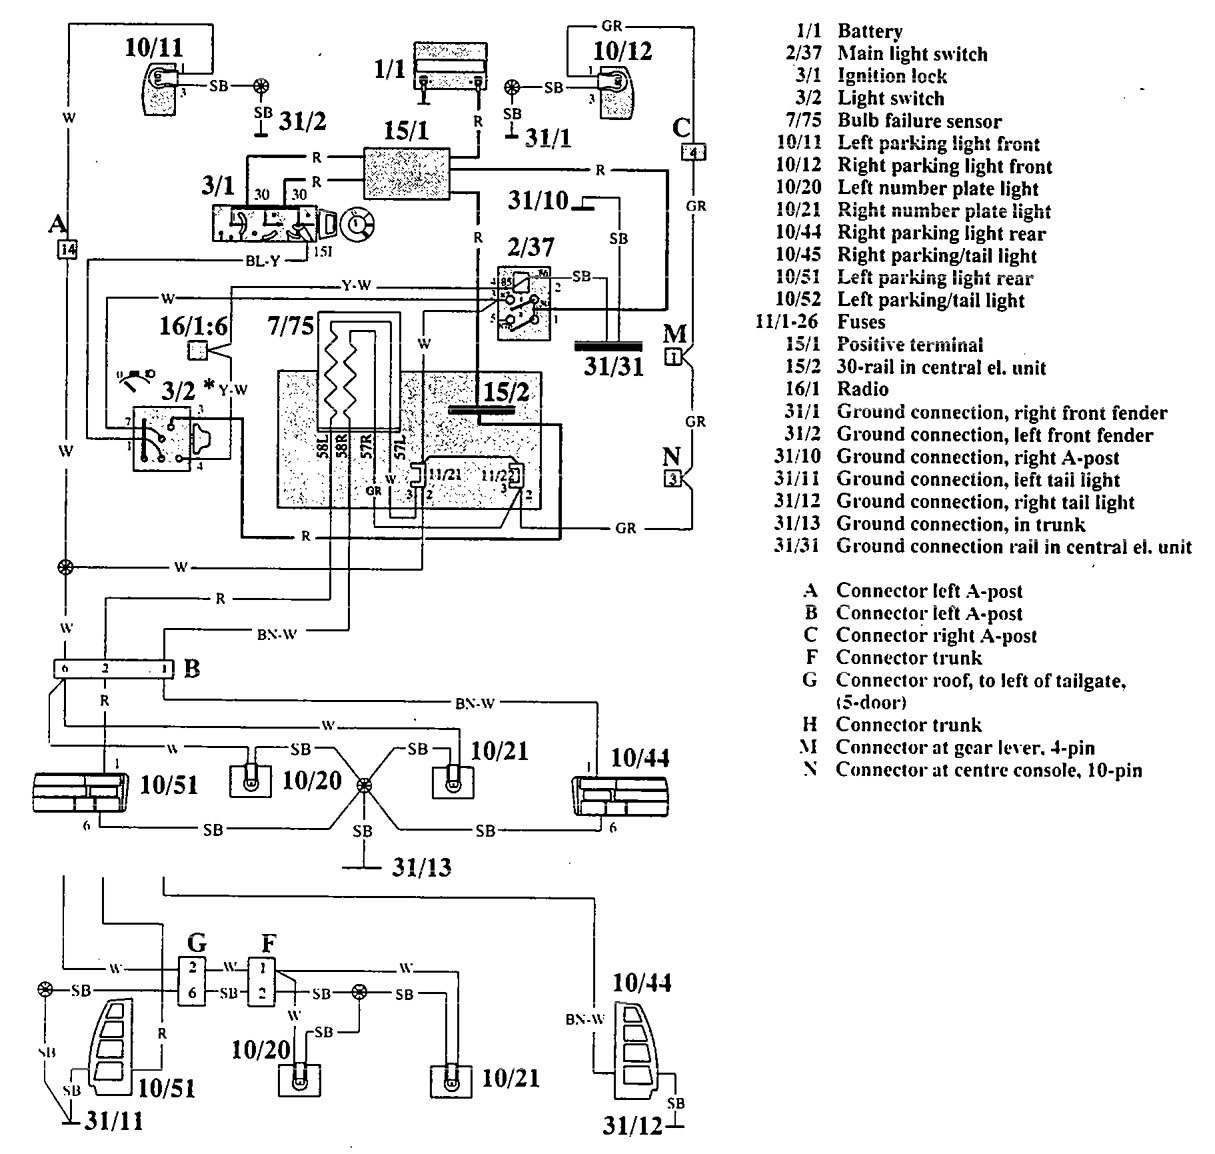 2002 dodge ram exterior parts diagram html